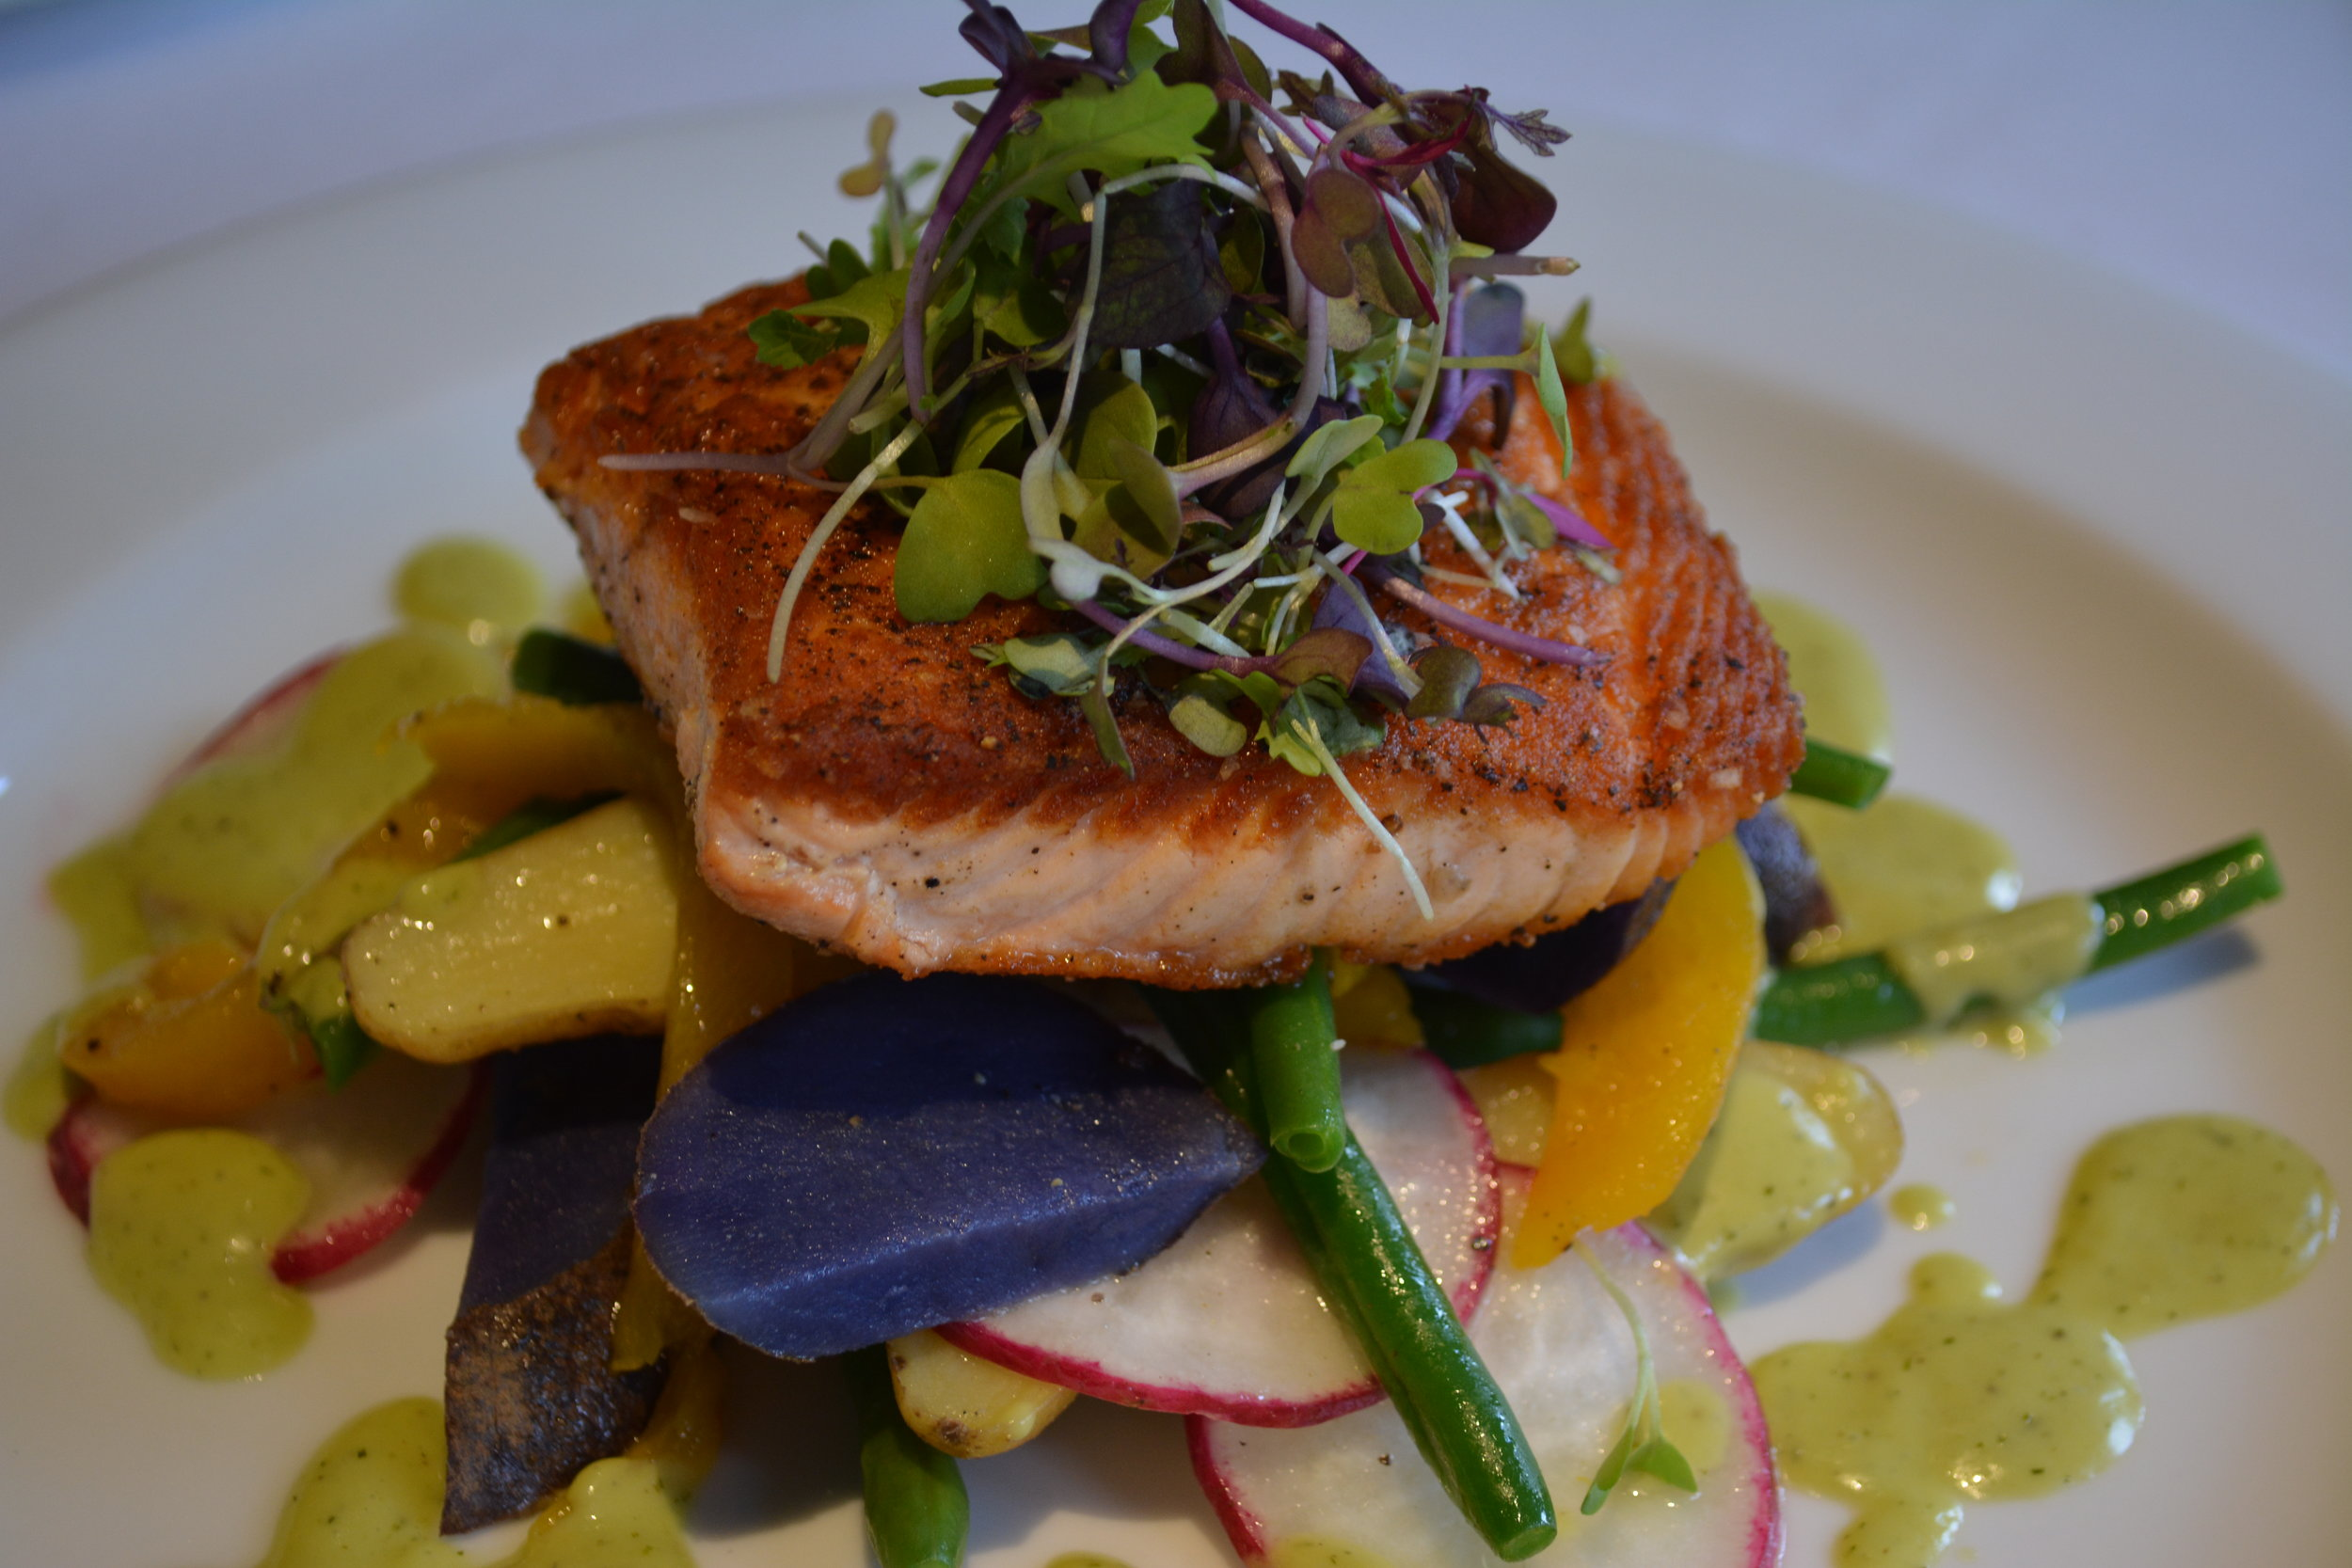 Salmon ($28) is served with a heirloom potato and string bean salad and a dill vinaigrette.